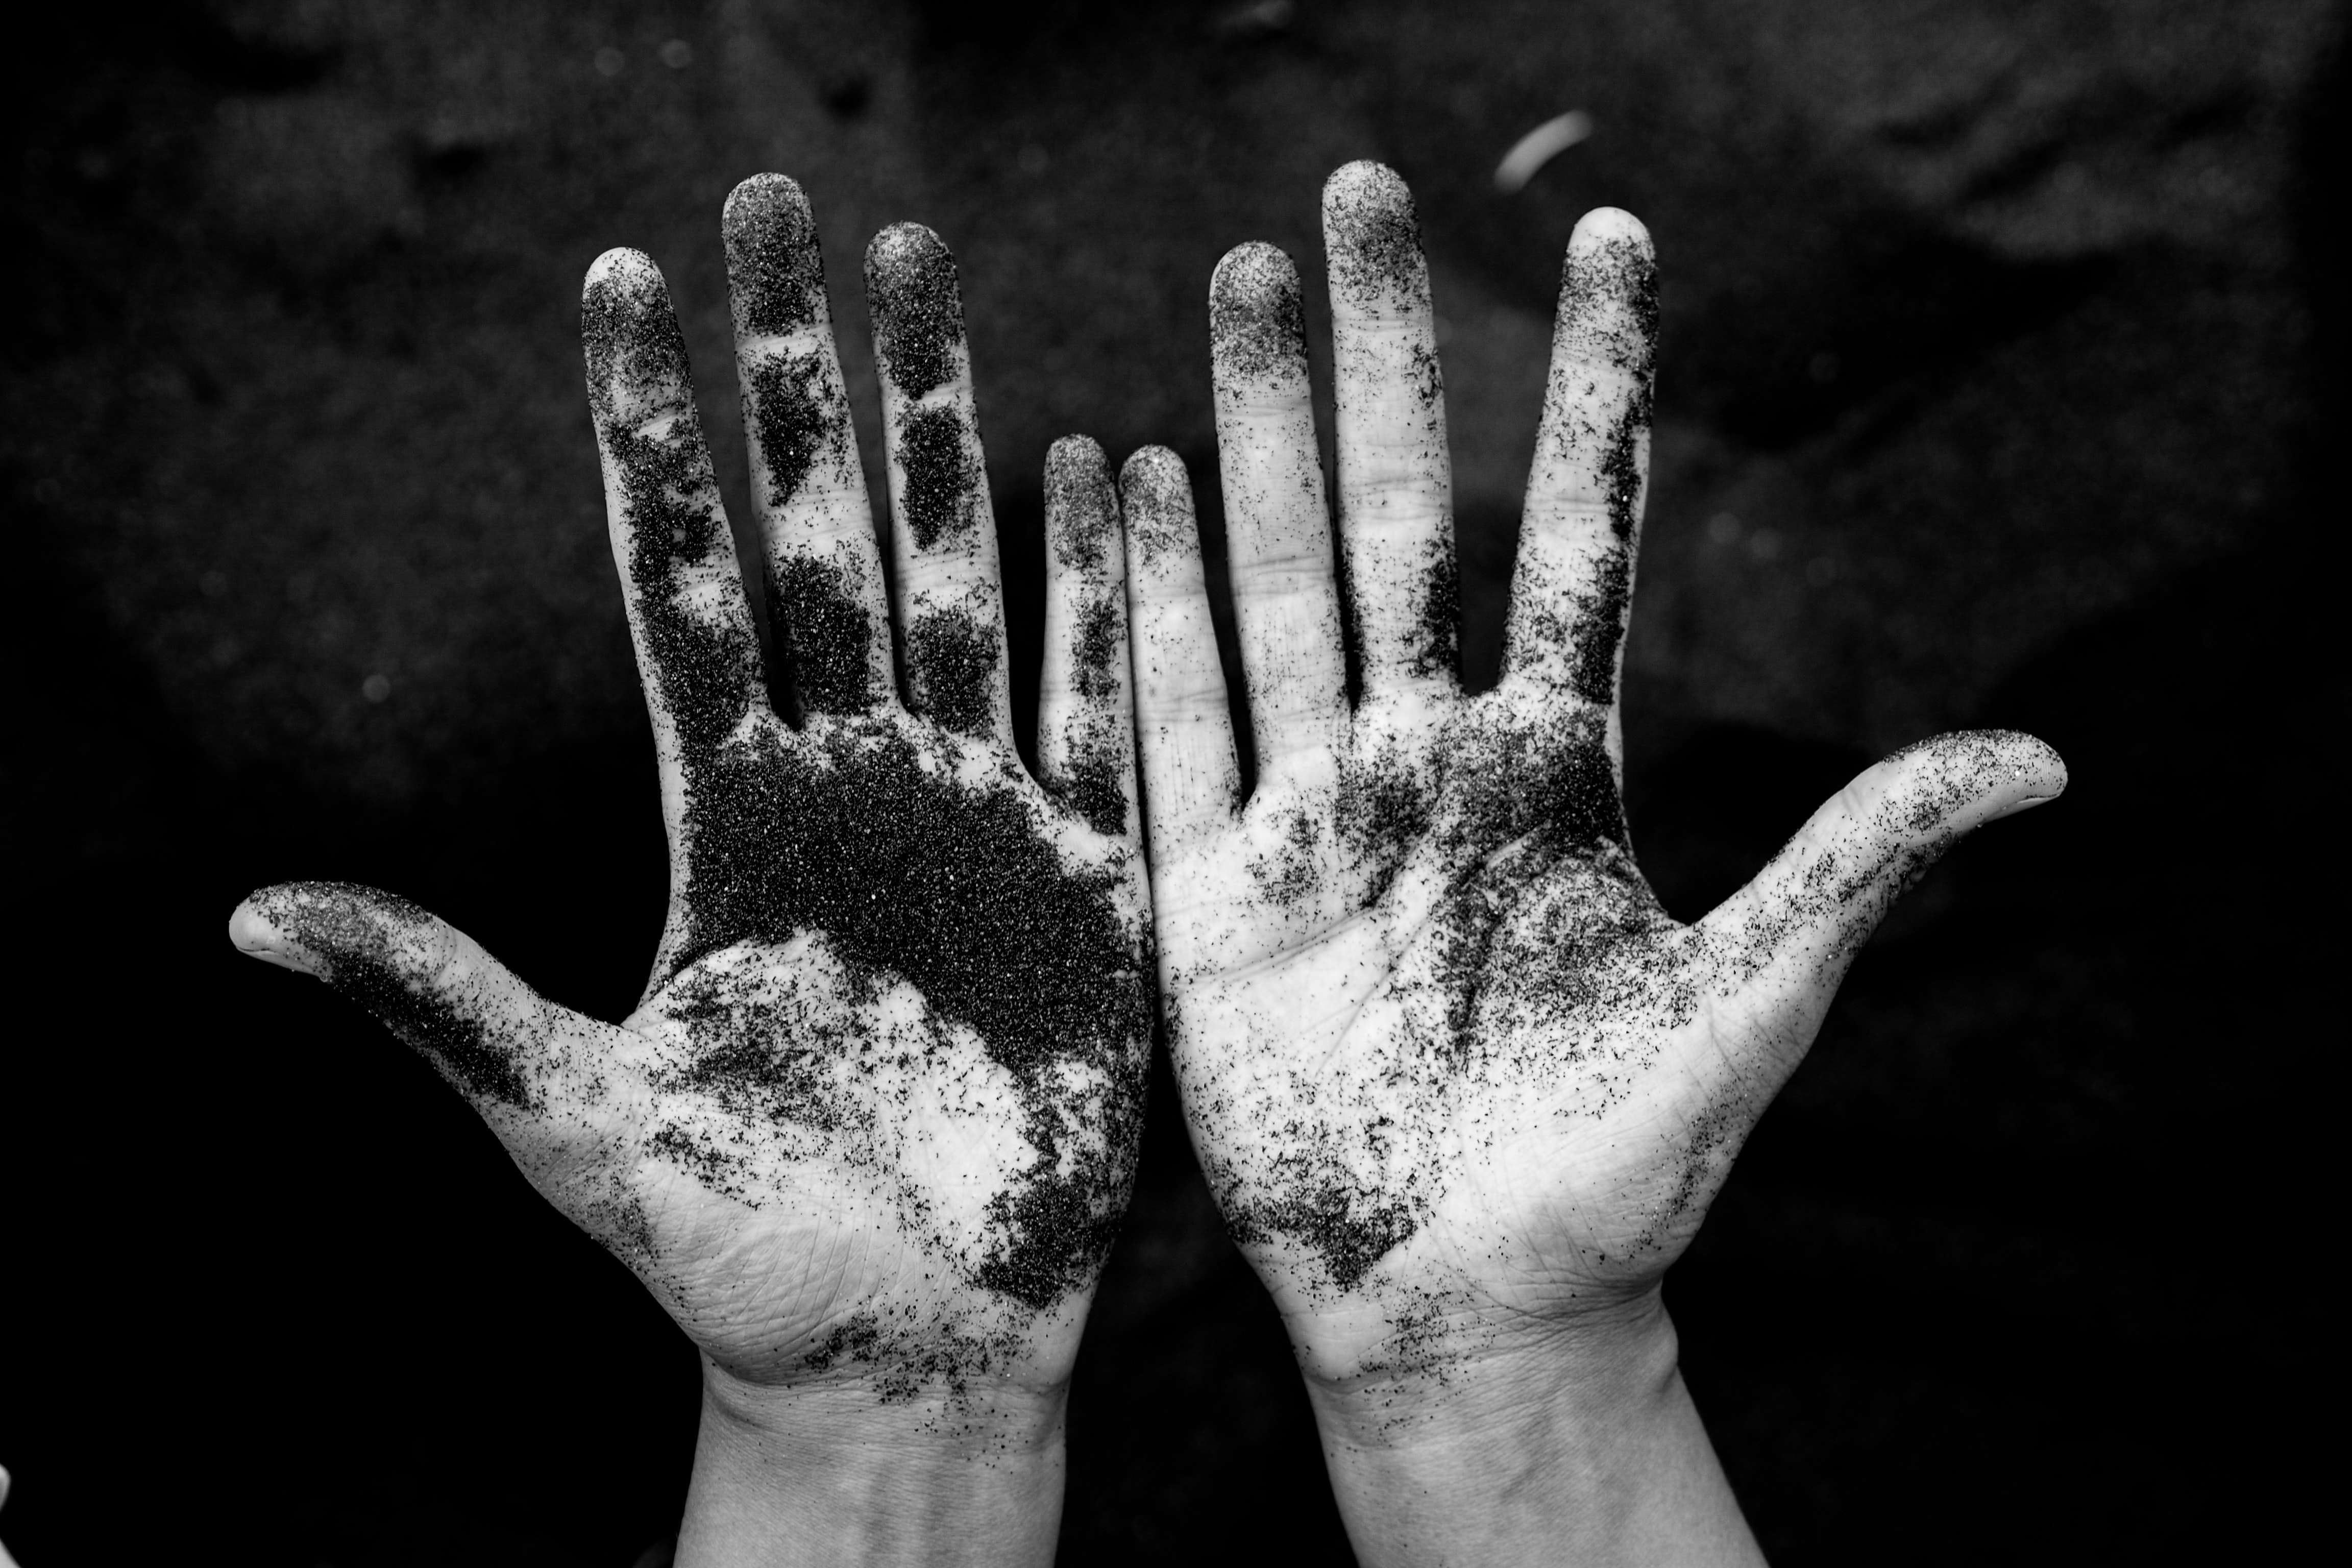 A black and white photograph showing some black sand on a pair of open hands.